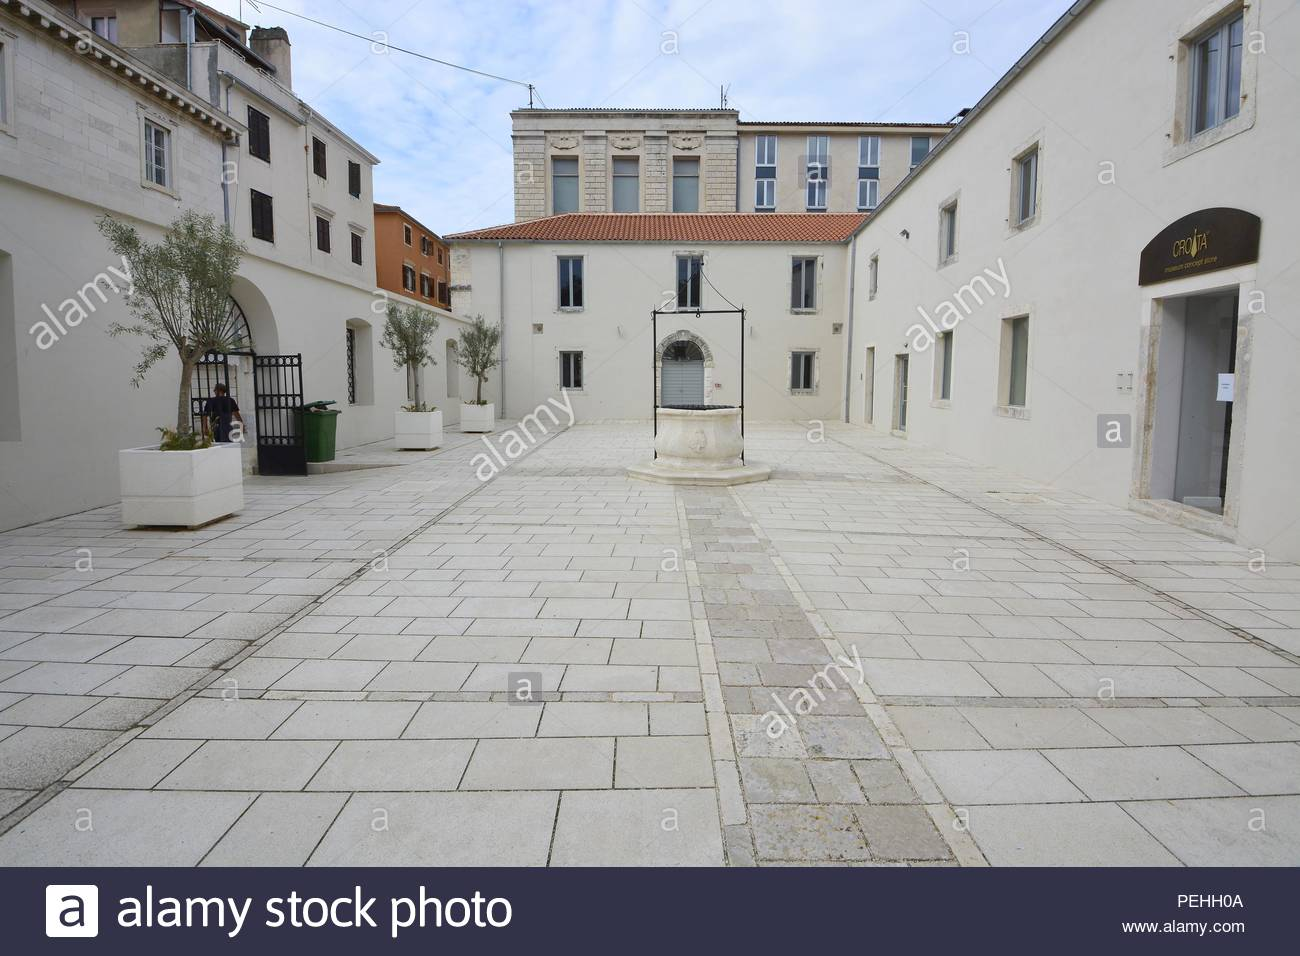 Museum Concept Store In Zadar Stock Photos & Museum Concept Store In